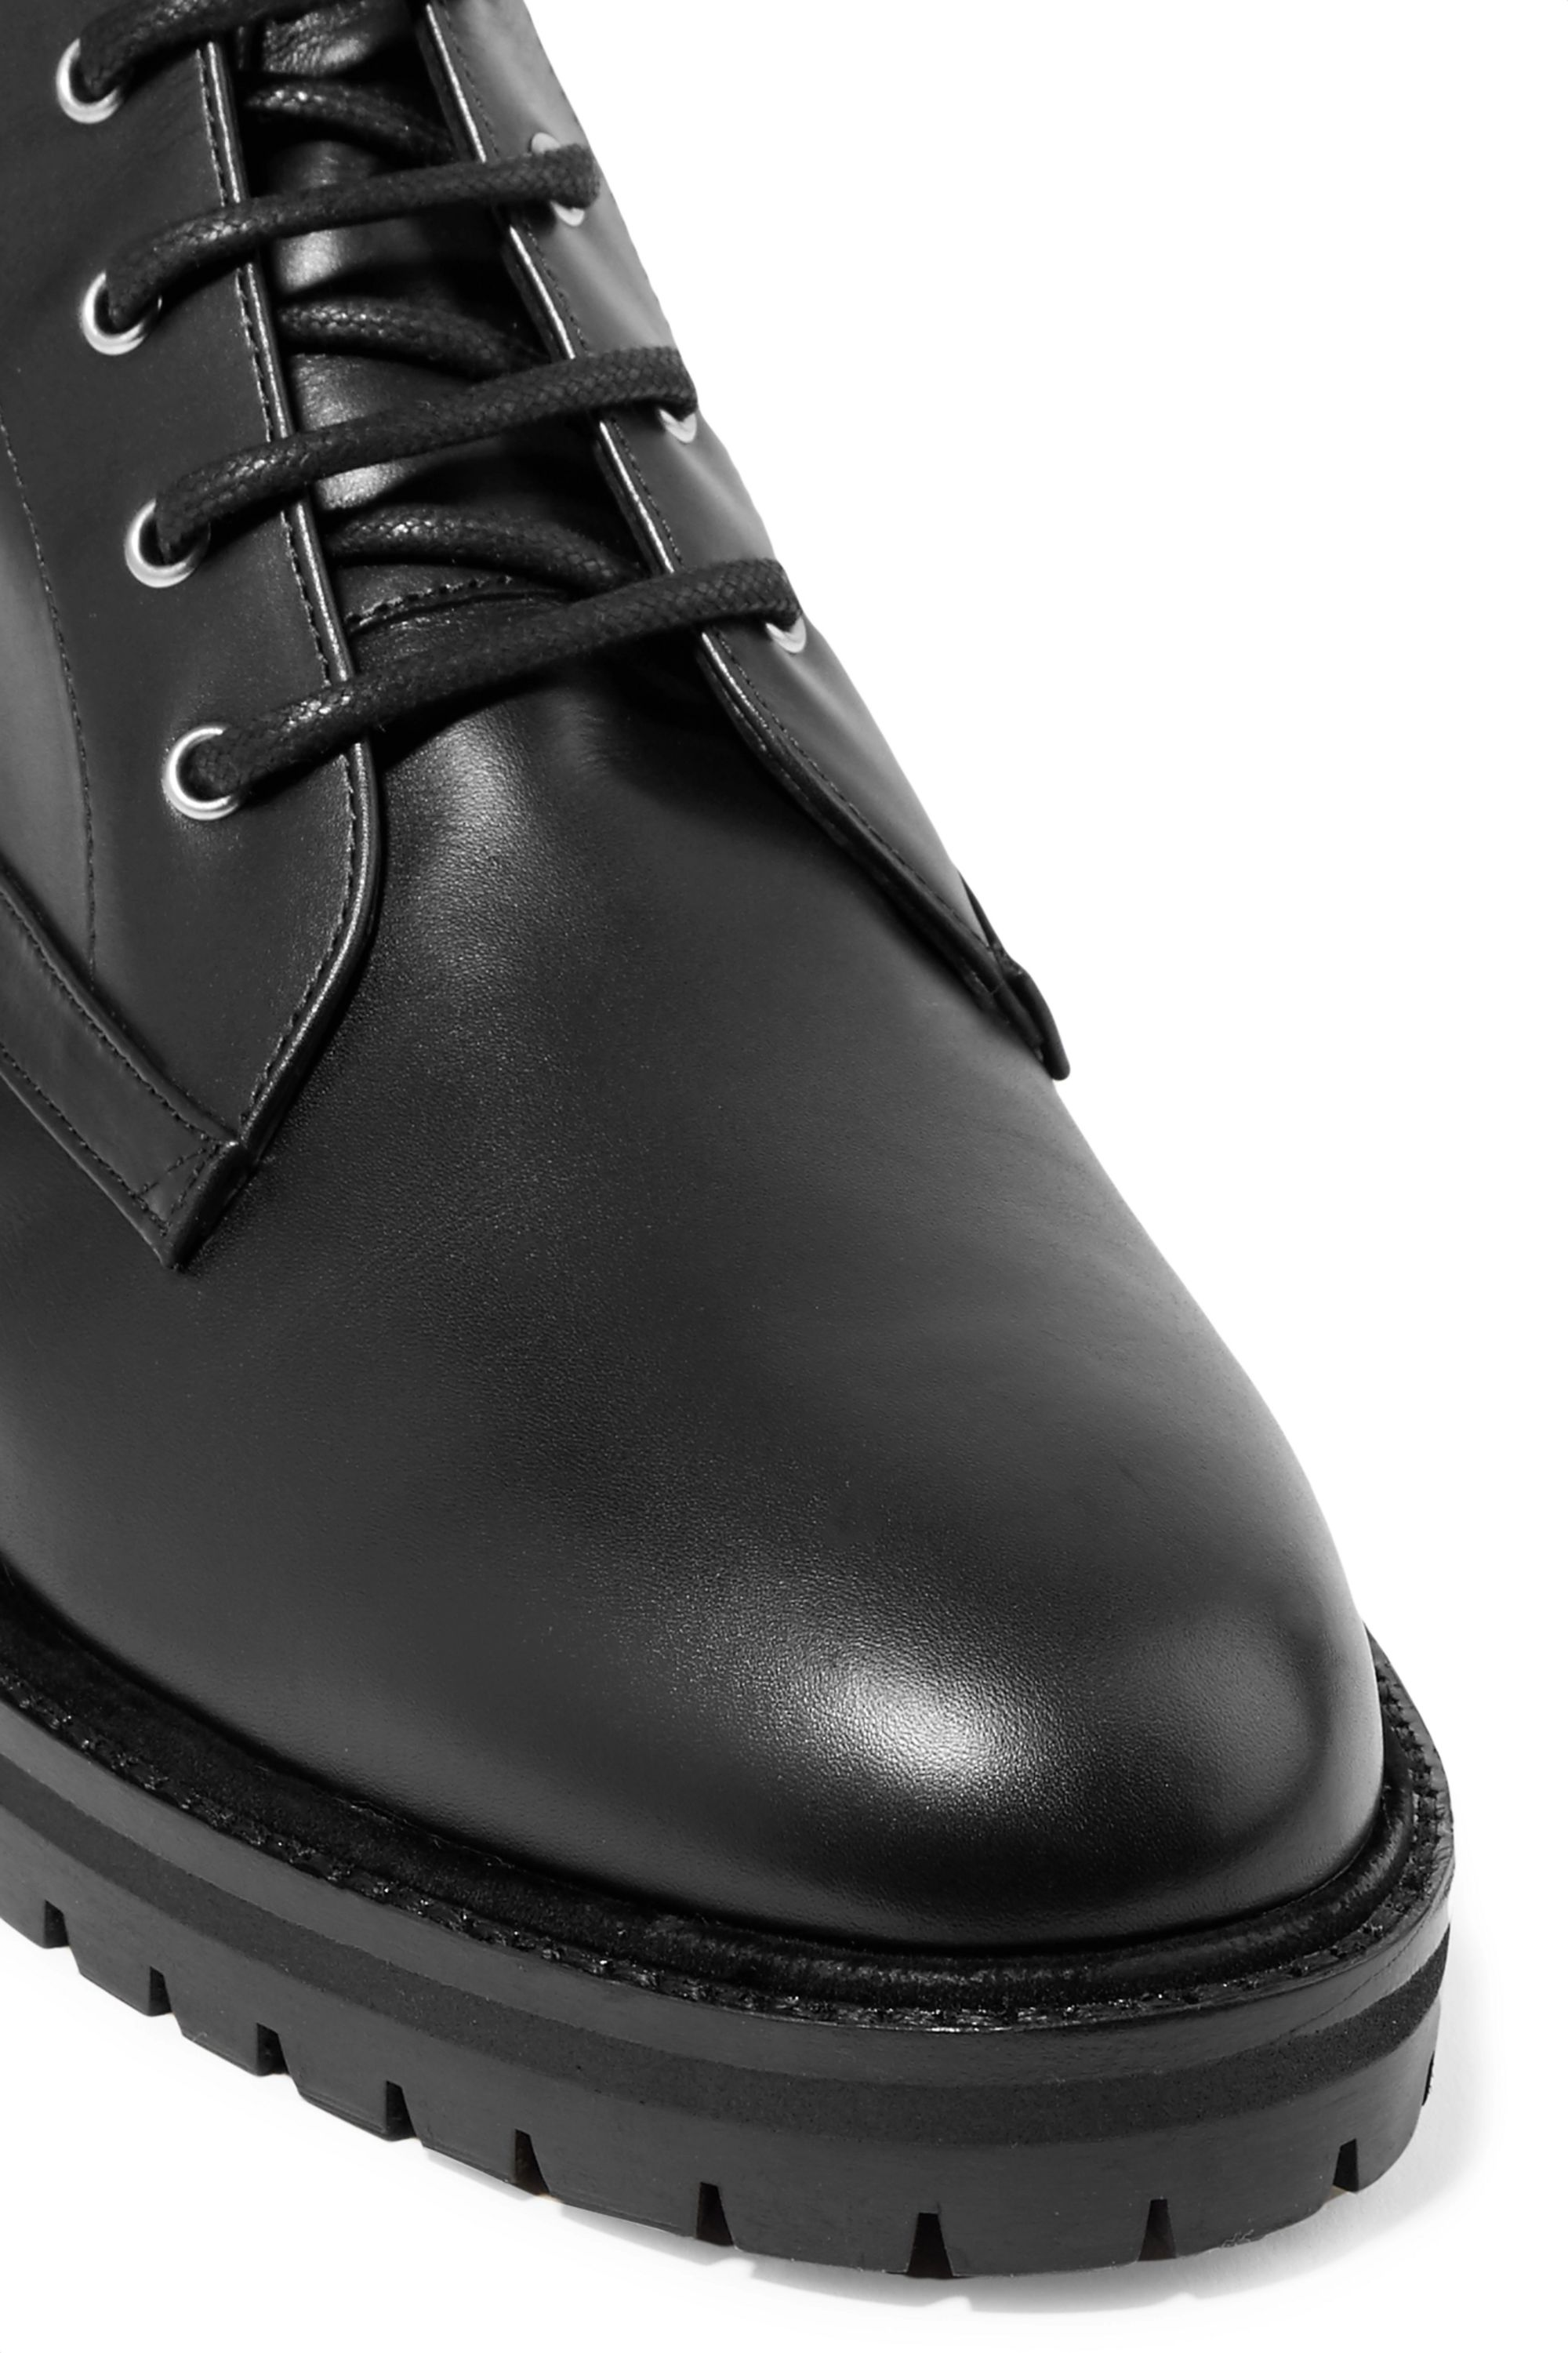 Black Max leather ankle boots | Tabitha